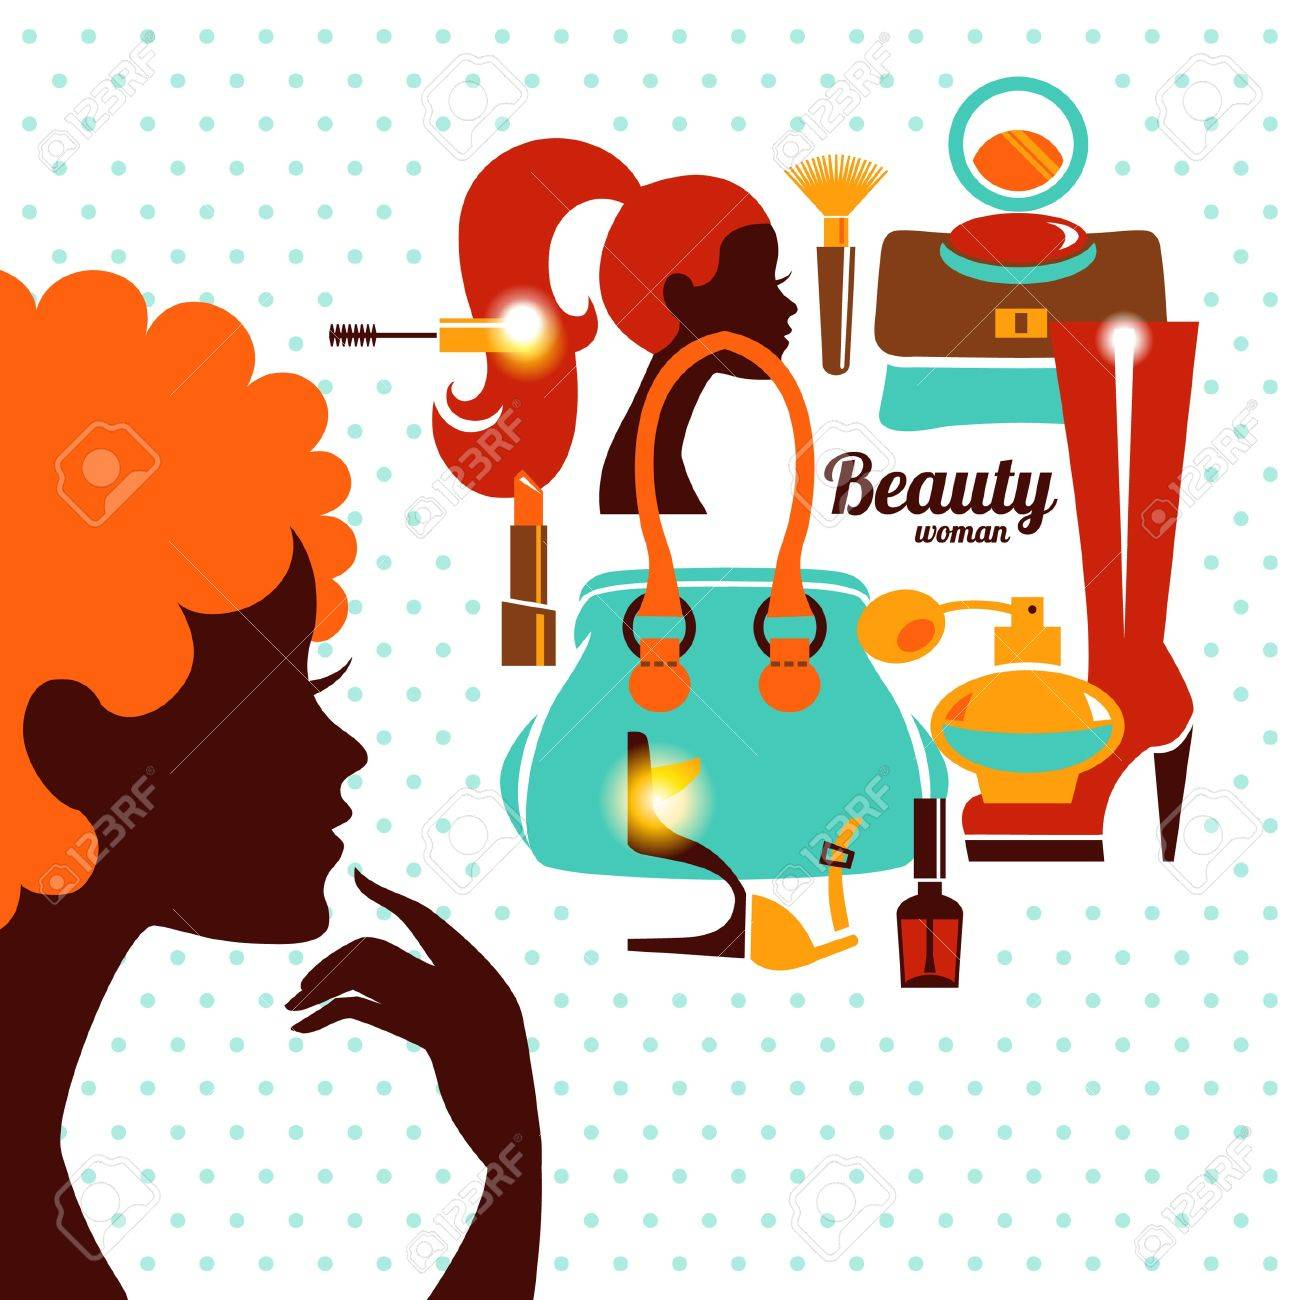 Beautiful woman silhouette with fashion icons. Shopping girl. Elegant stylish design Stock Vector - 18813685